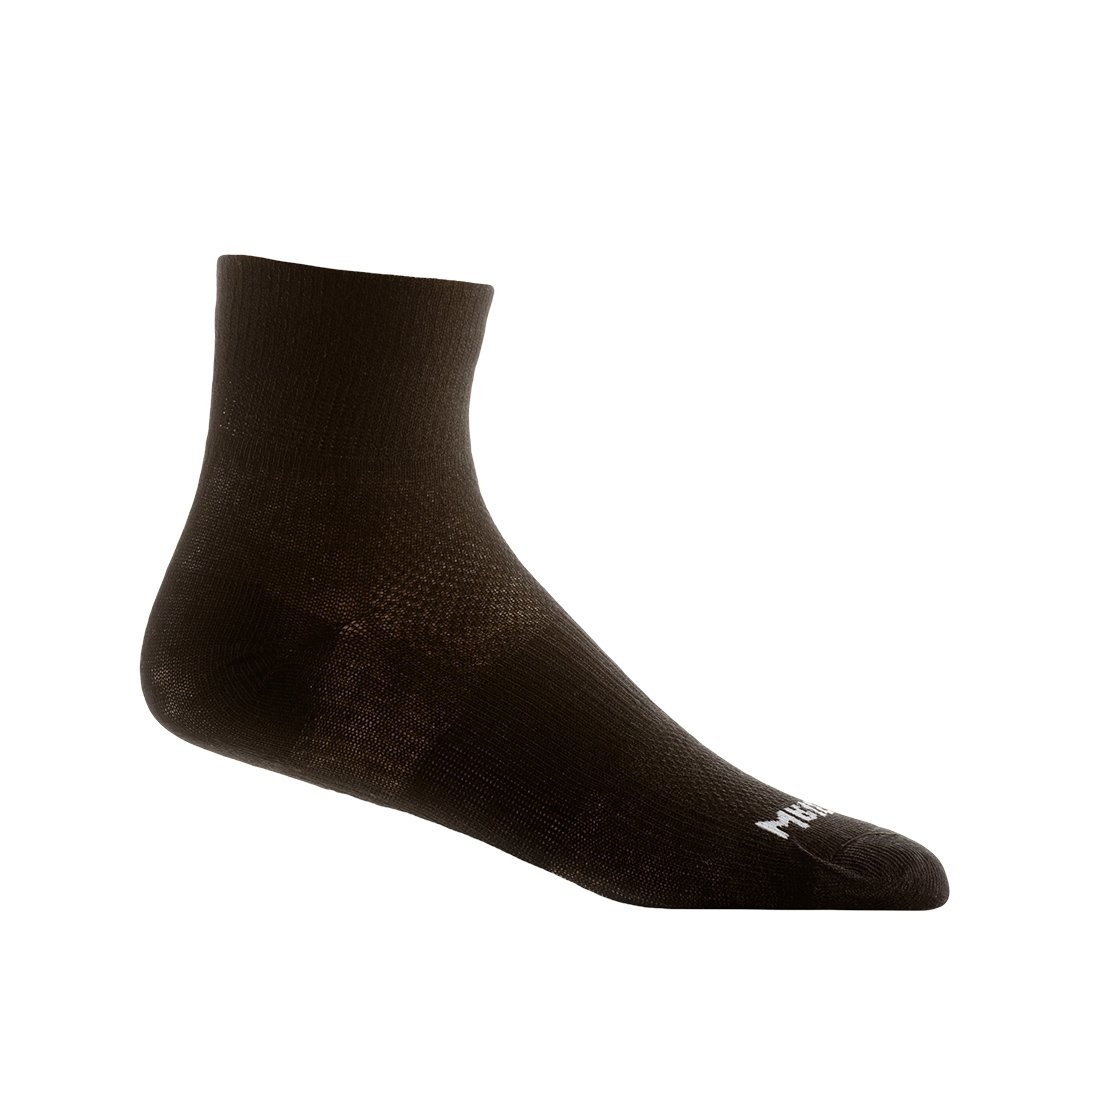 Wrightsock Double Layer Coolmesh 2 Quarter Sock